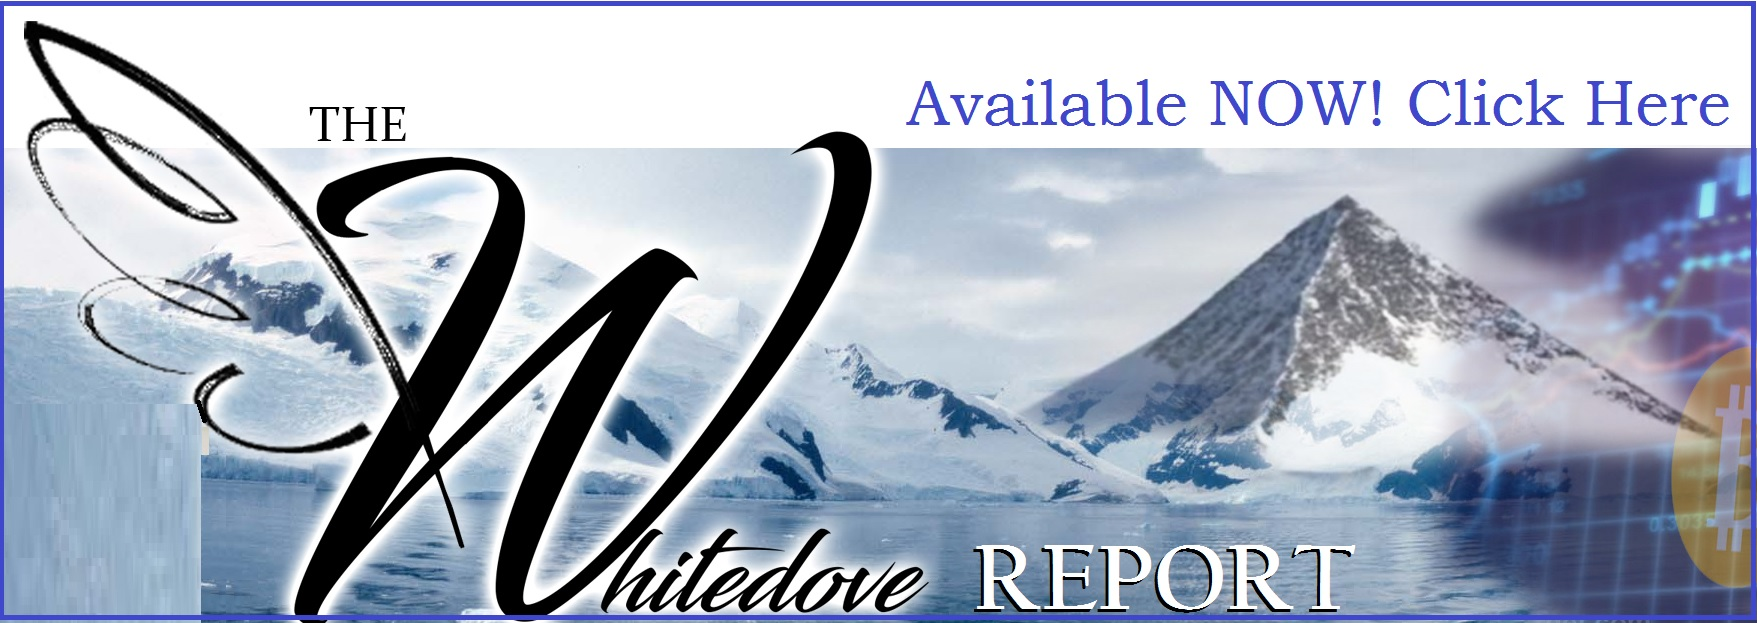 the whitedove crypto report get it here.